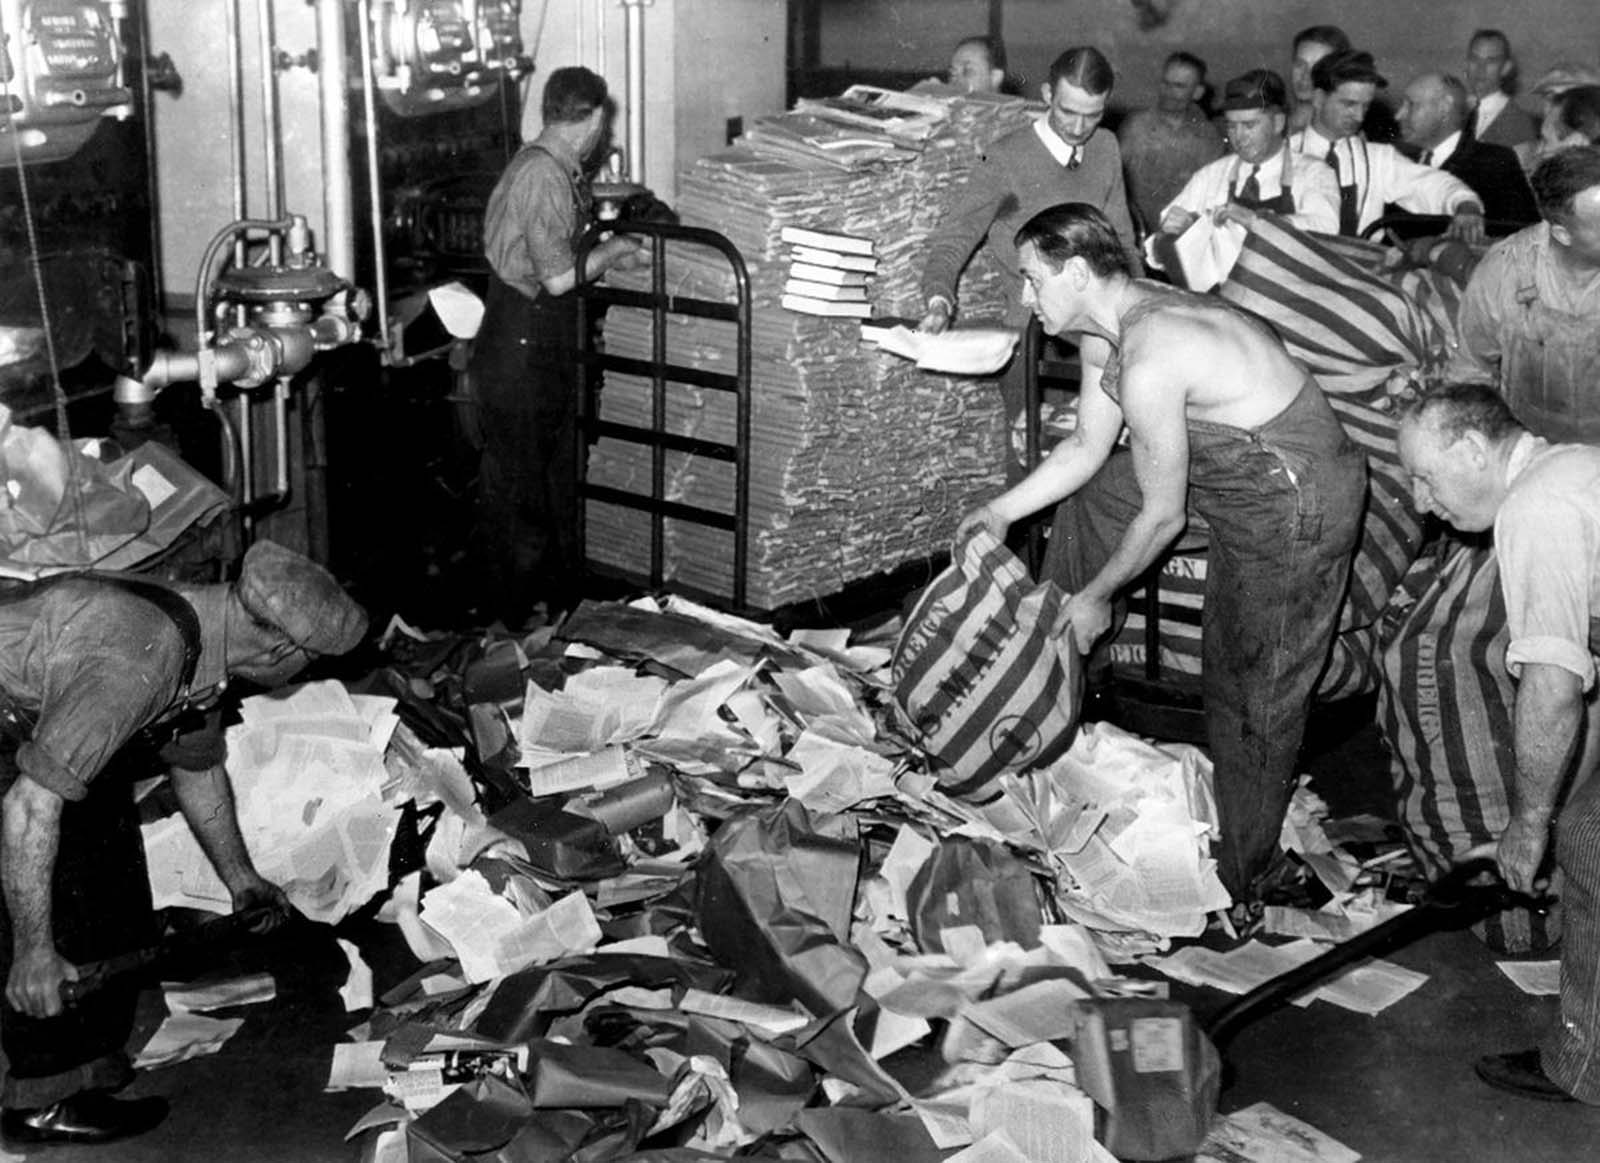 U.S. Postal employees feed 17 tons of reading matter, labeled by postal authorities as propaganda, into a furnace in San Francisco, California, on March 19, 1941. The bulk of the newspapers, books, and pamphlets came from Nazi Germany and some from Russia, Italy and Japan.